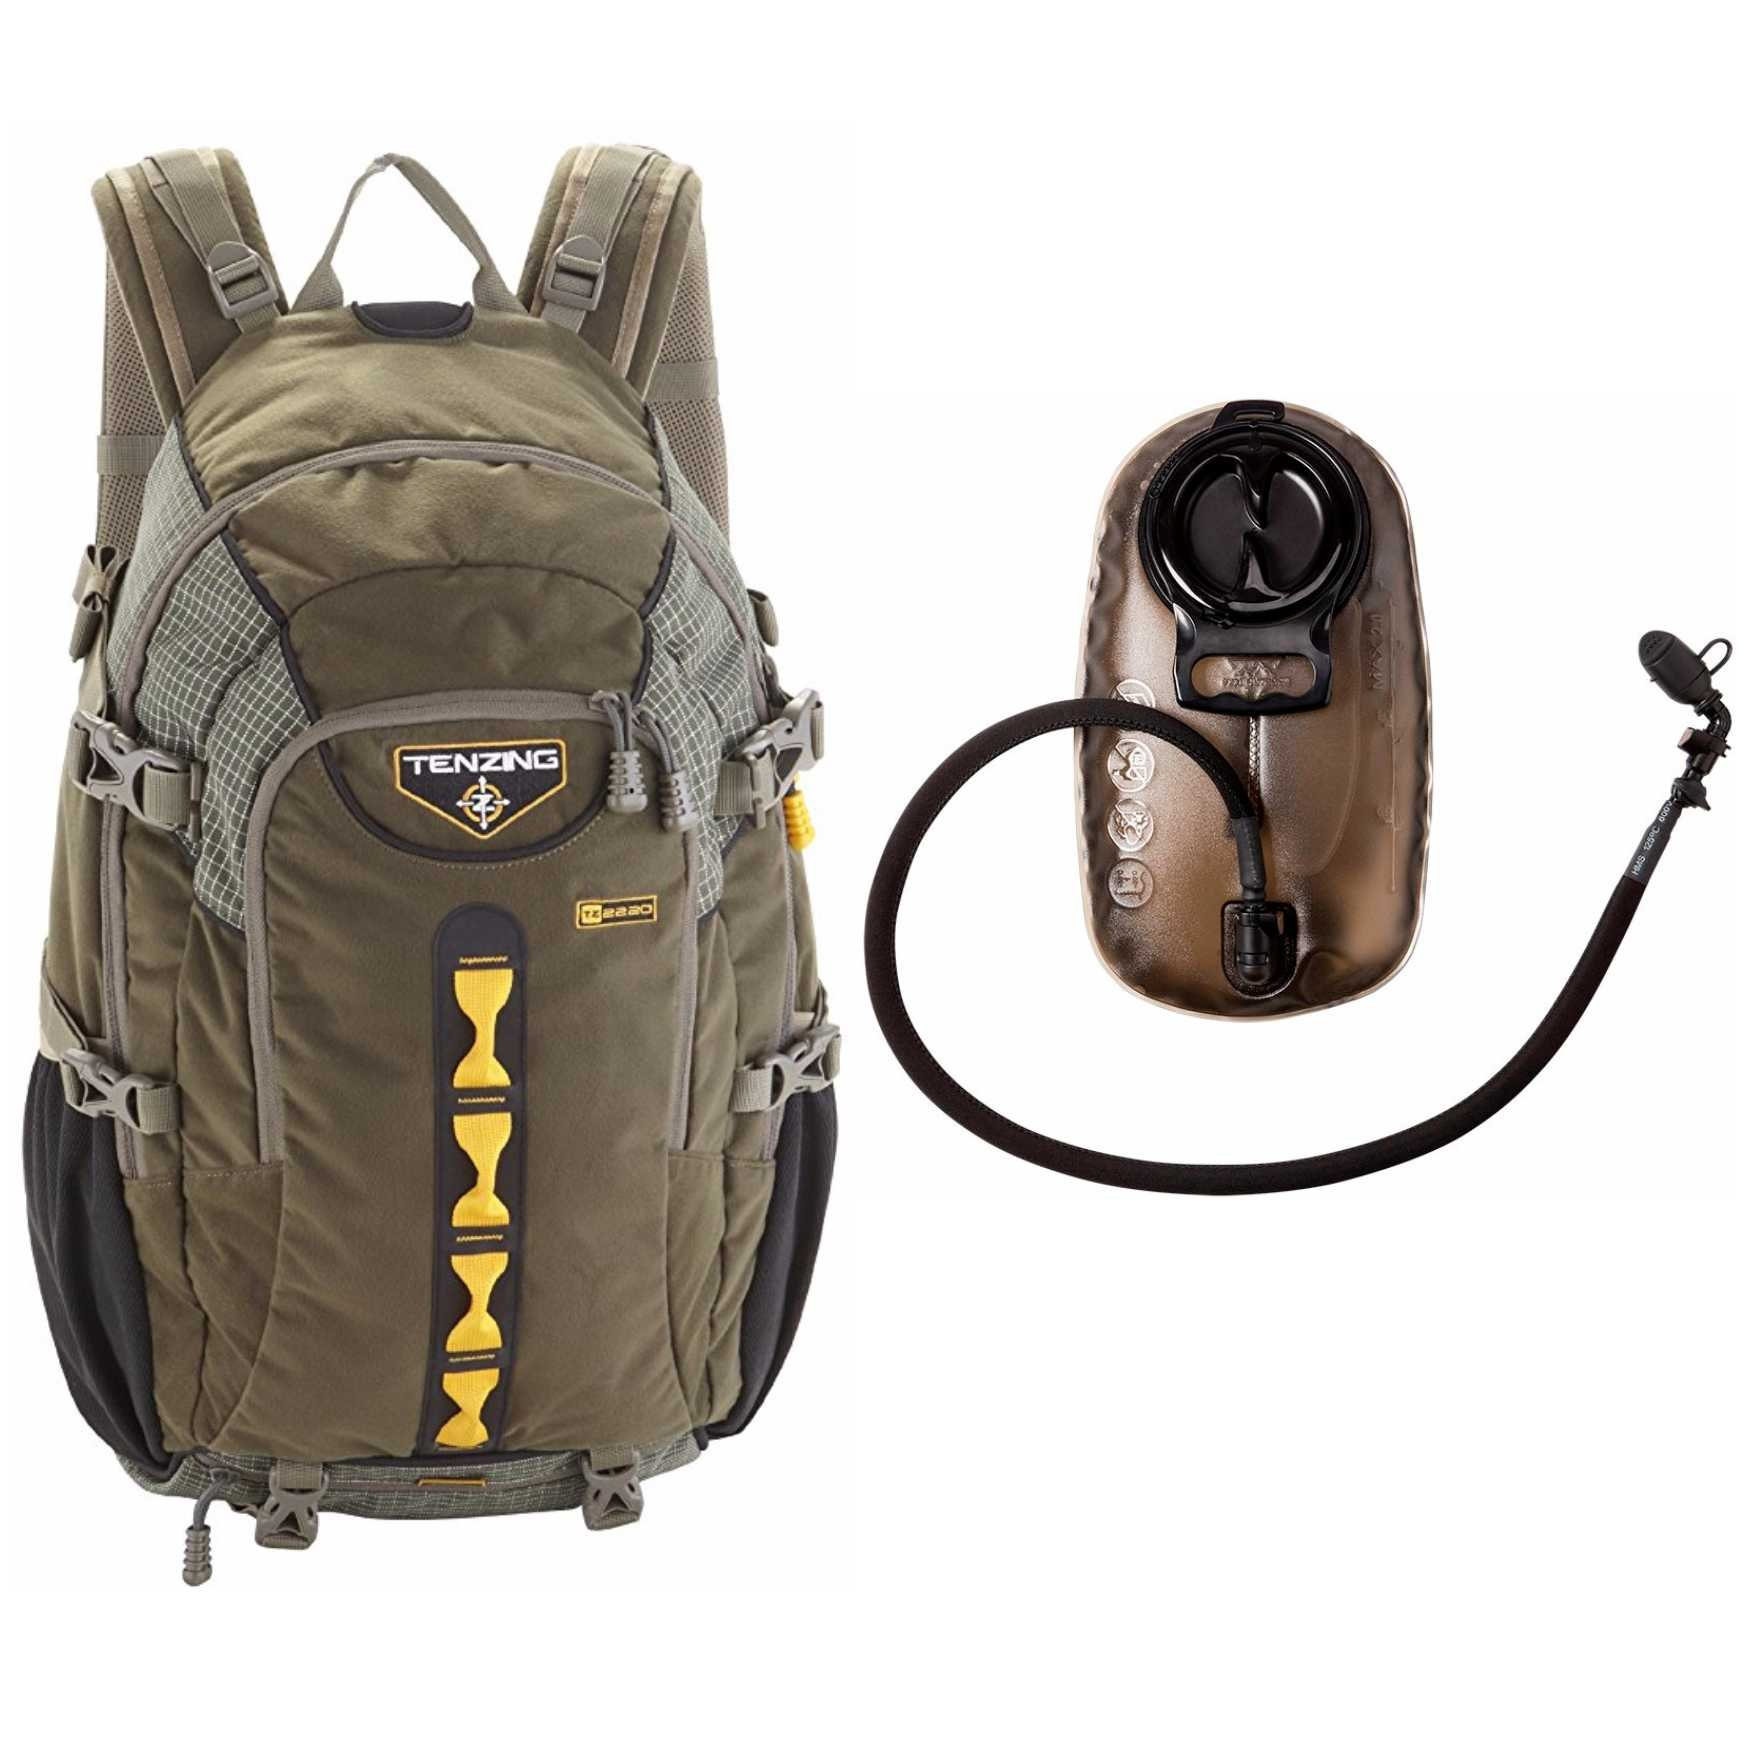 Tenzing TZ 2220 Game Hunting Day Pack Backpack (Loden Green) with 2.0L Hydration Reservoir